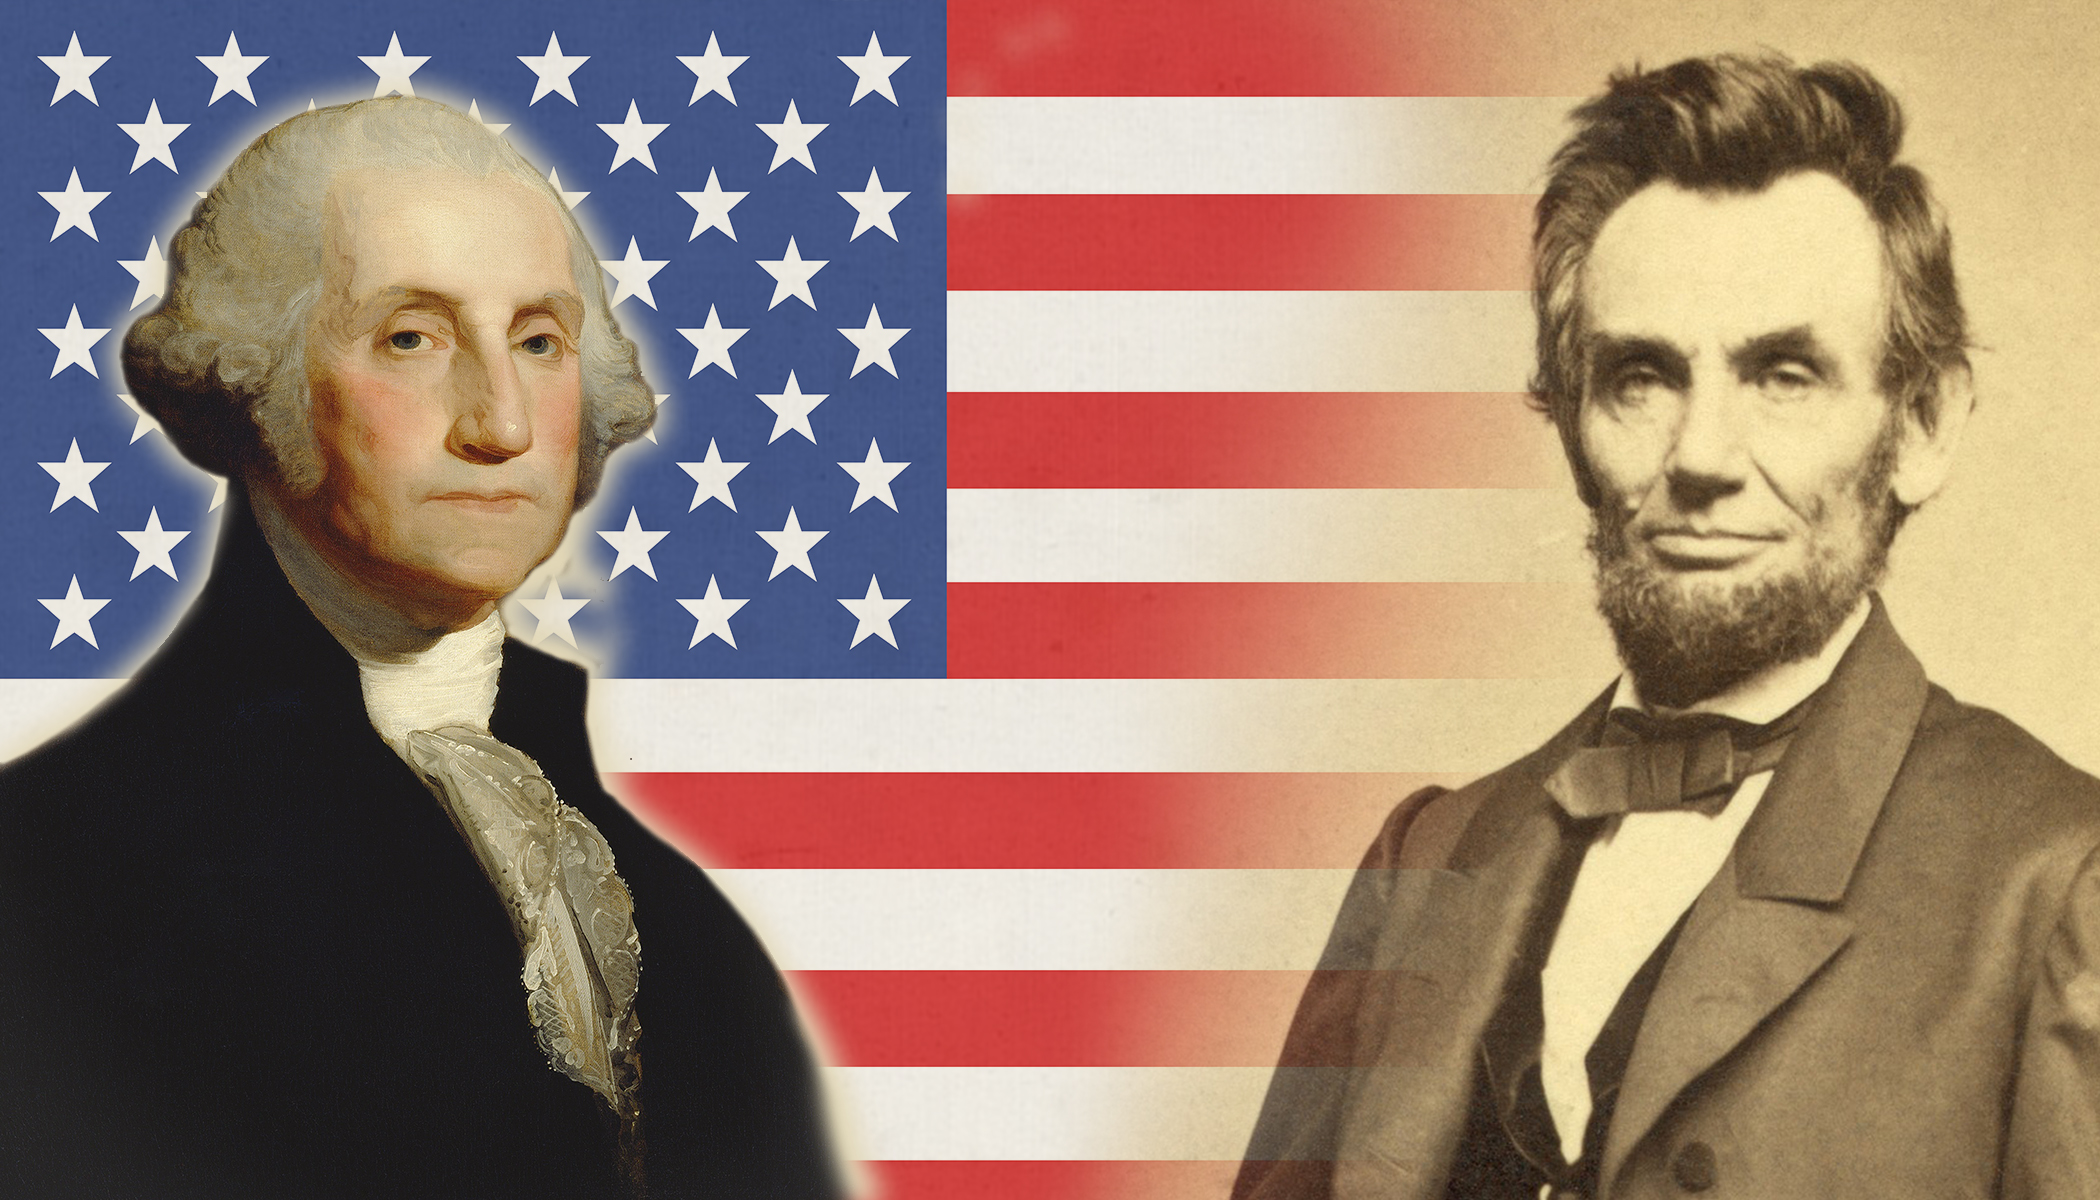 Presidents of Faith: How George Washington and Abe Lincoln's Belief in America Built the Republic